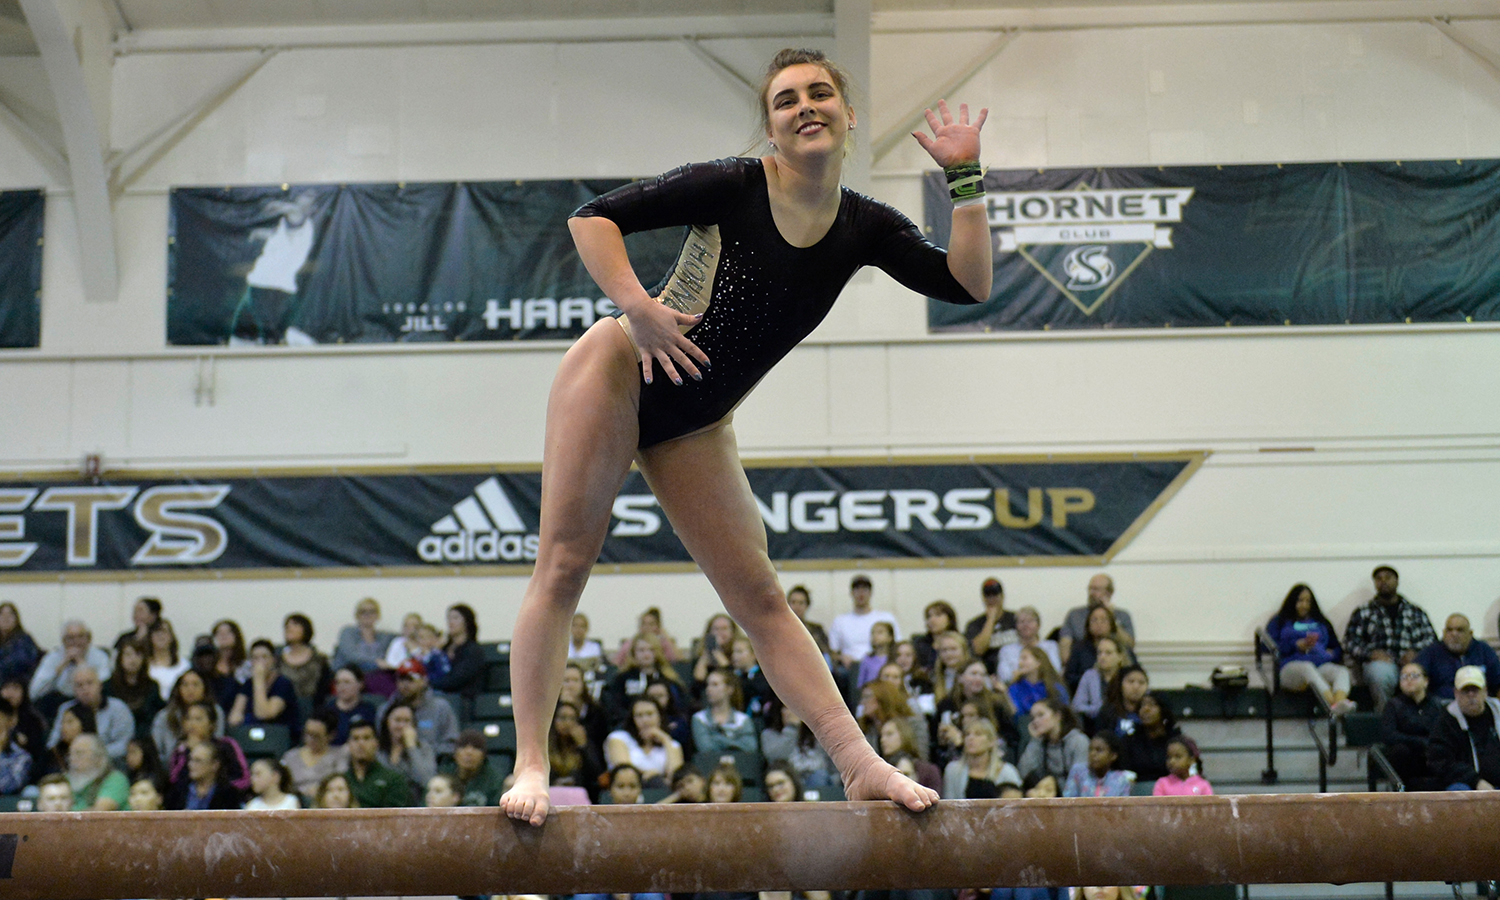 Lauren Rice, Gymnastics